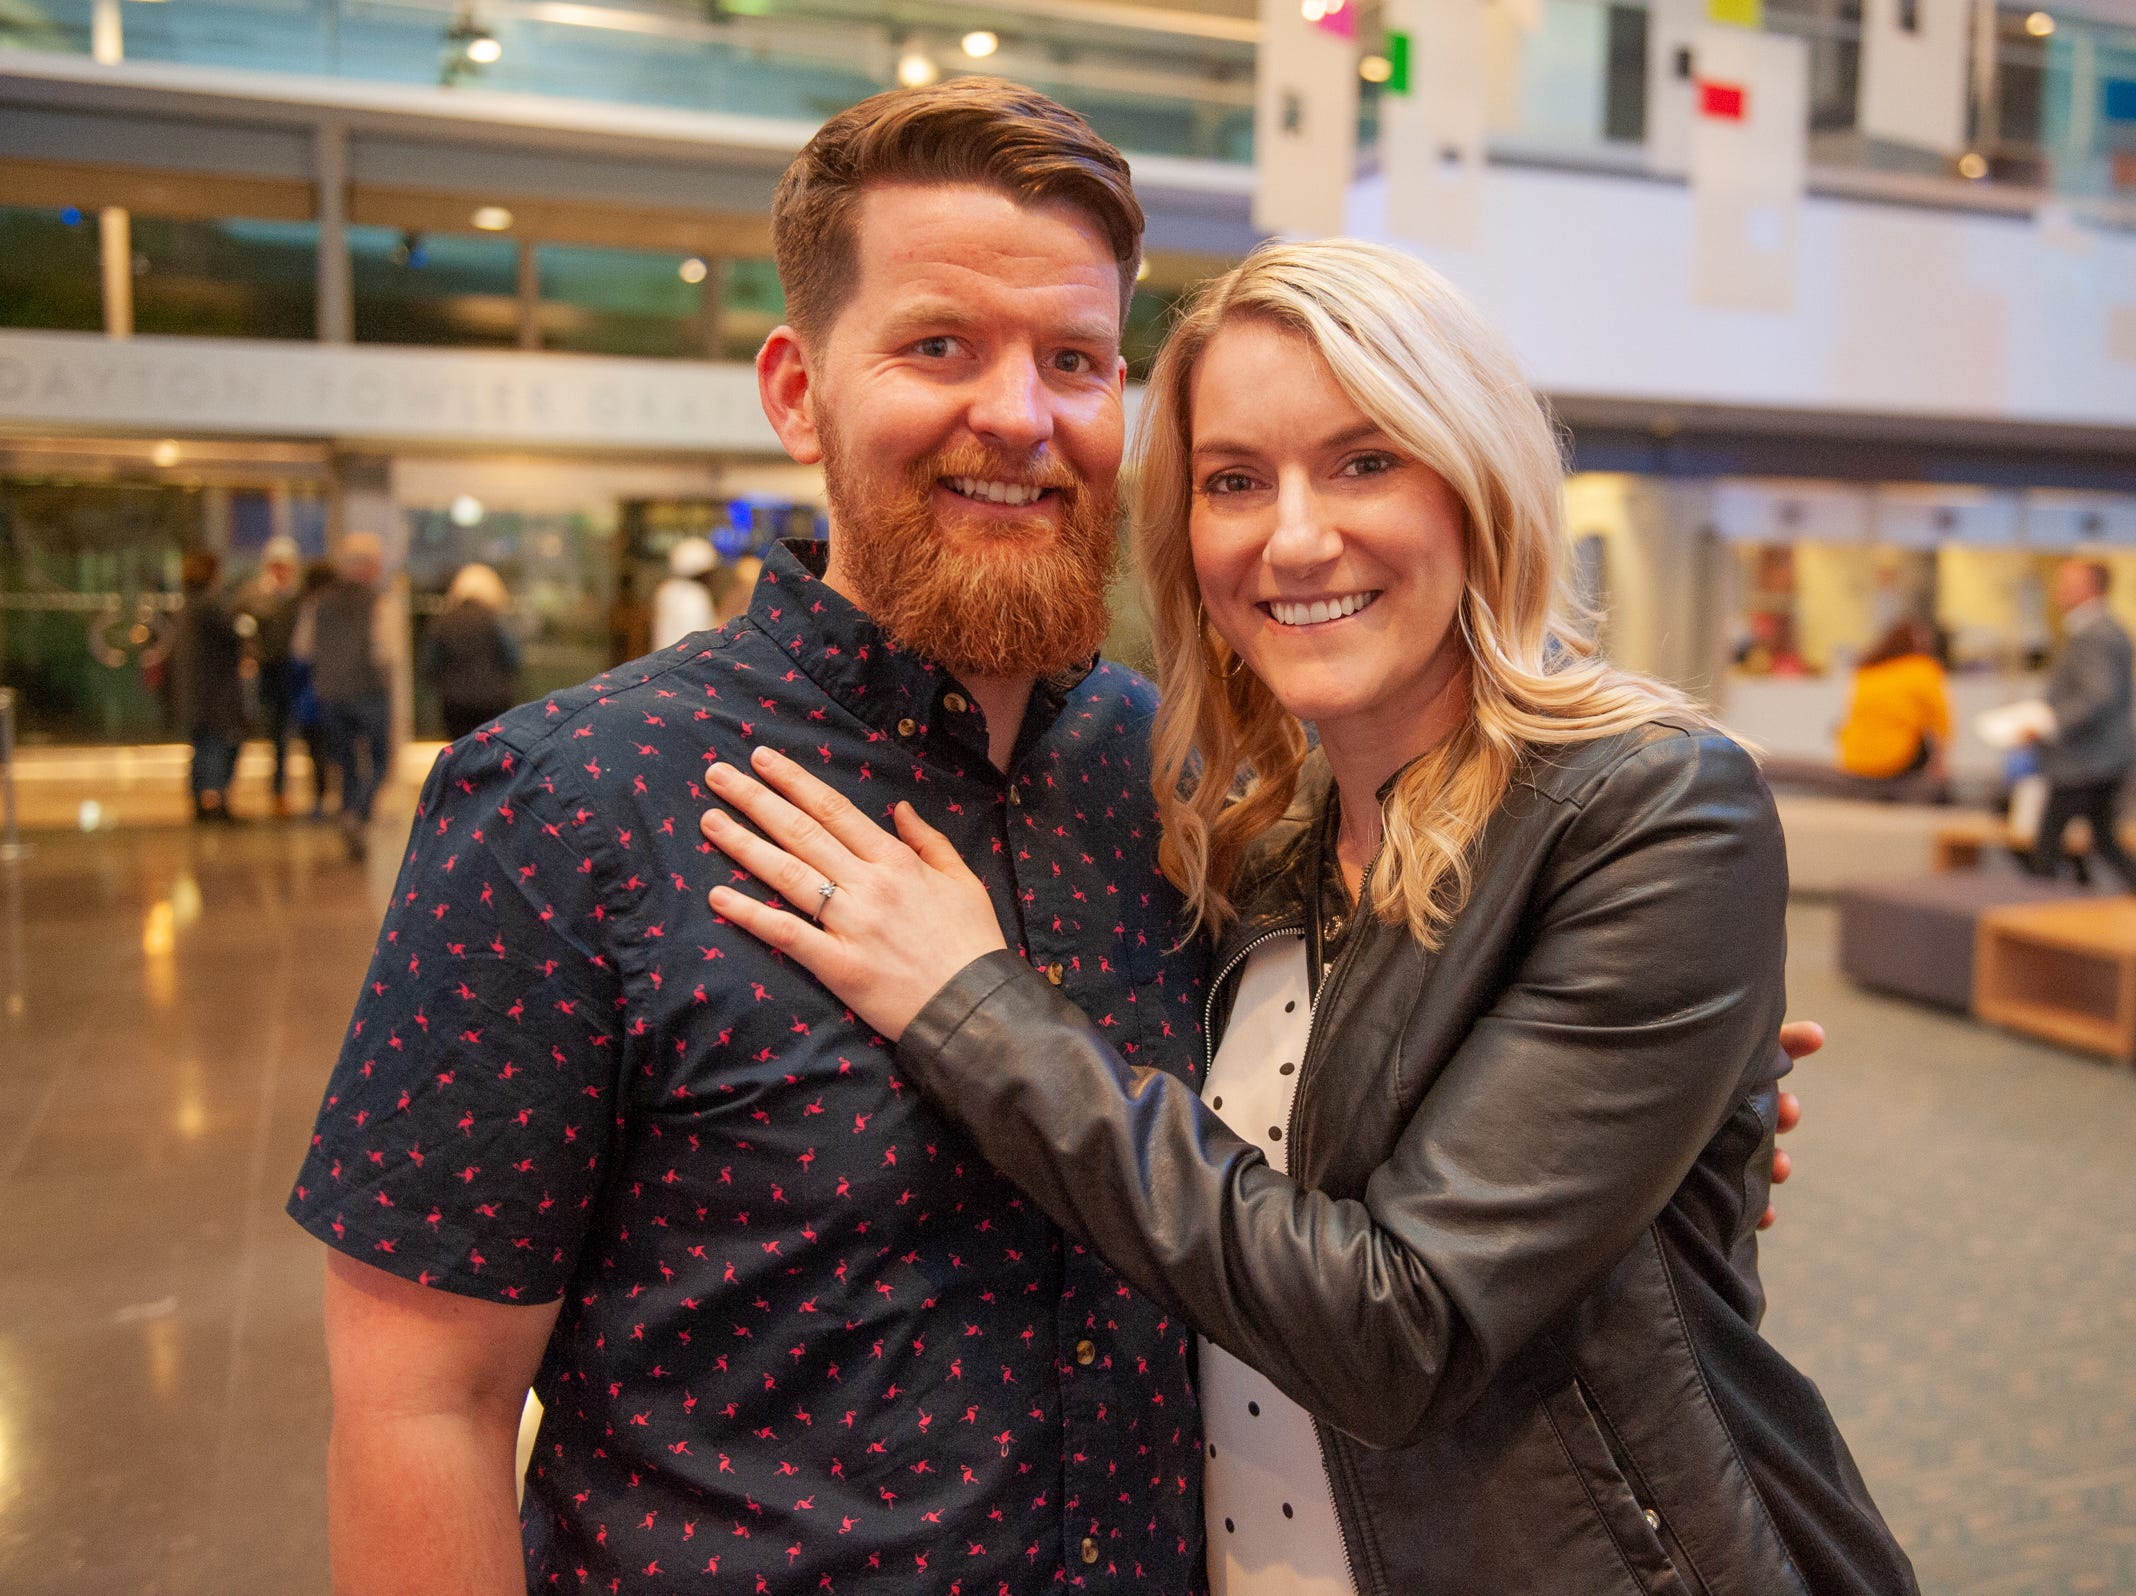 Josh Shore strikes a pose with his new fiancé after the show during The Storytellers Project presents Romance - or Not at the Scottsdale Center for Performing Arts on Wednesday, Feb. 13, 2019.